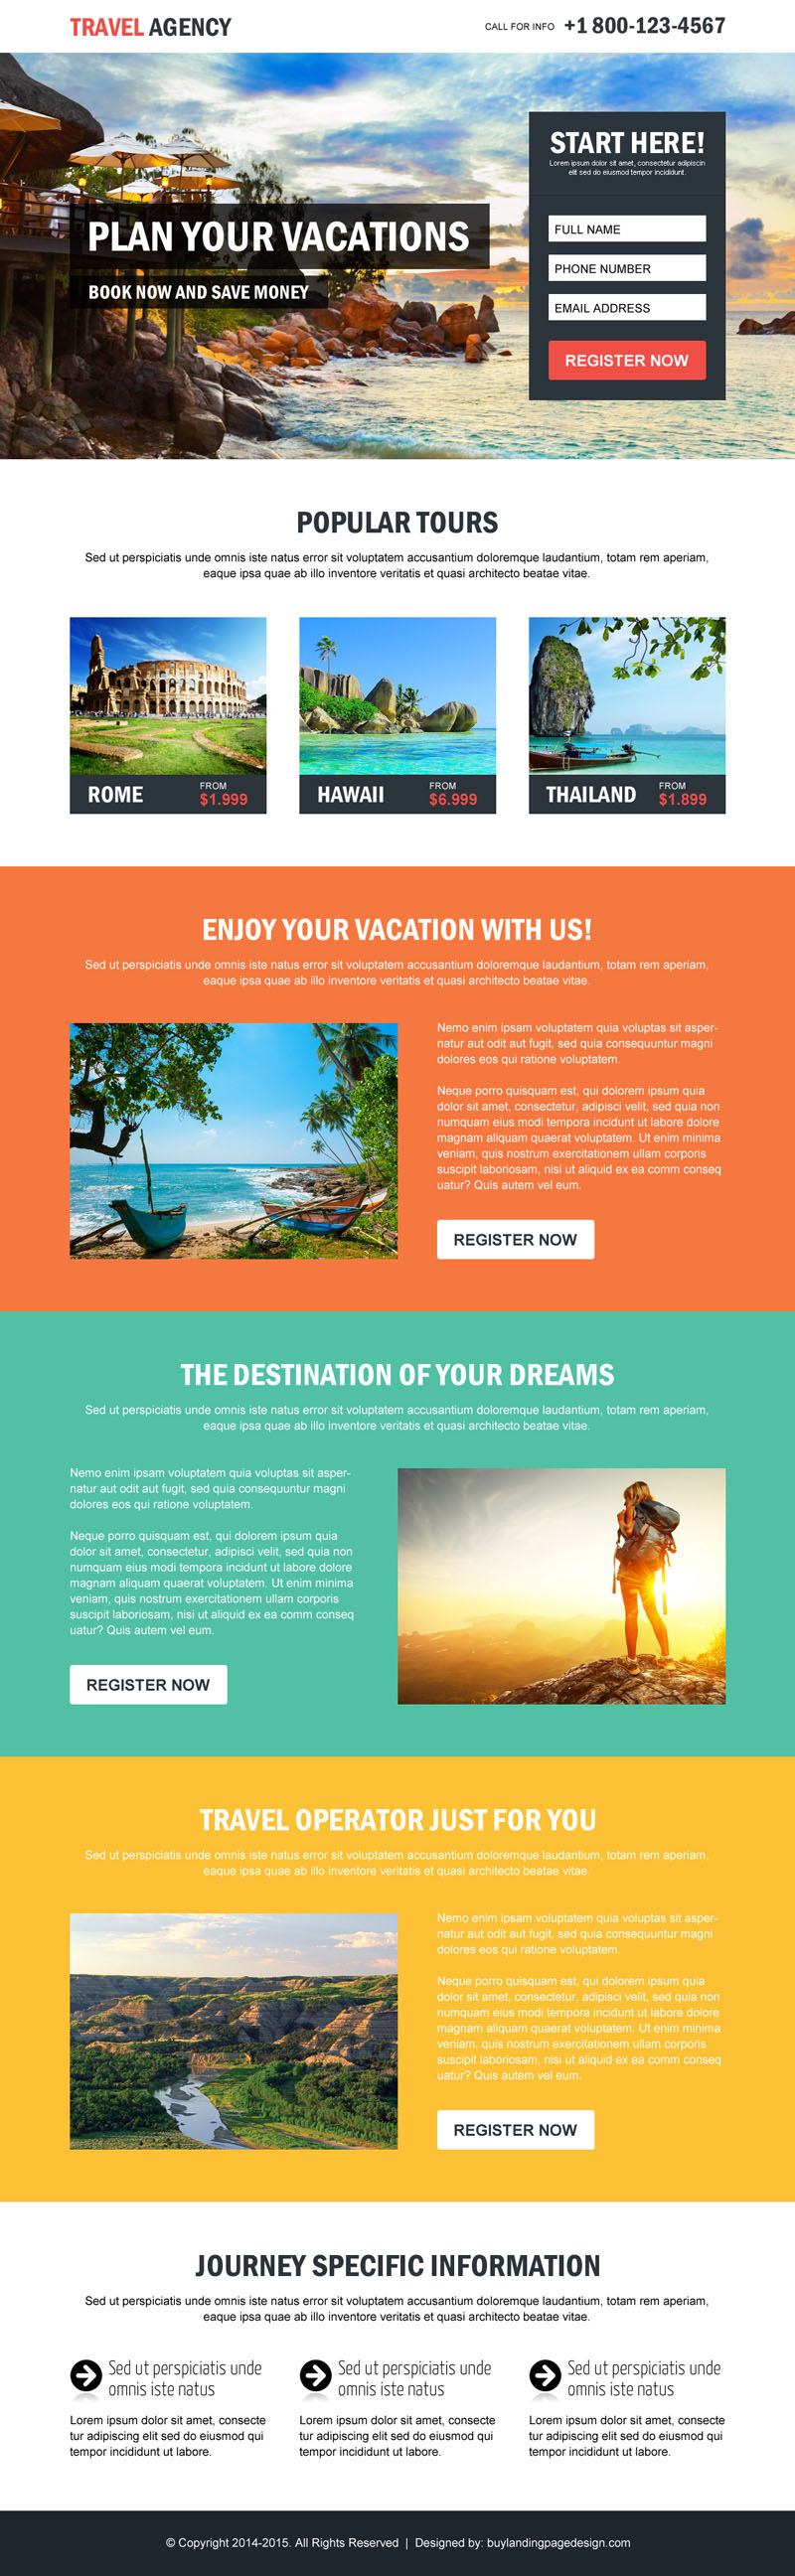 travel-agency-plan-your-vacations-lead-capture-optimized-landing-page-design-template-006